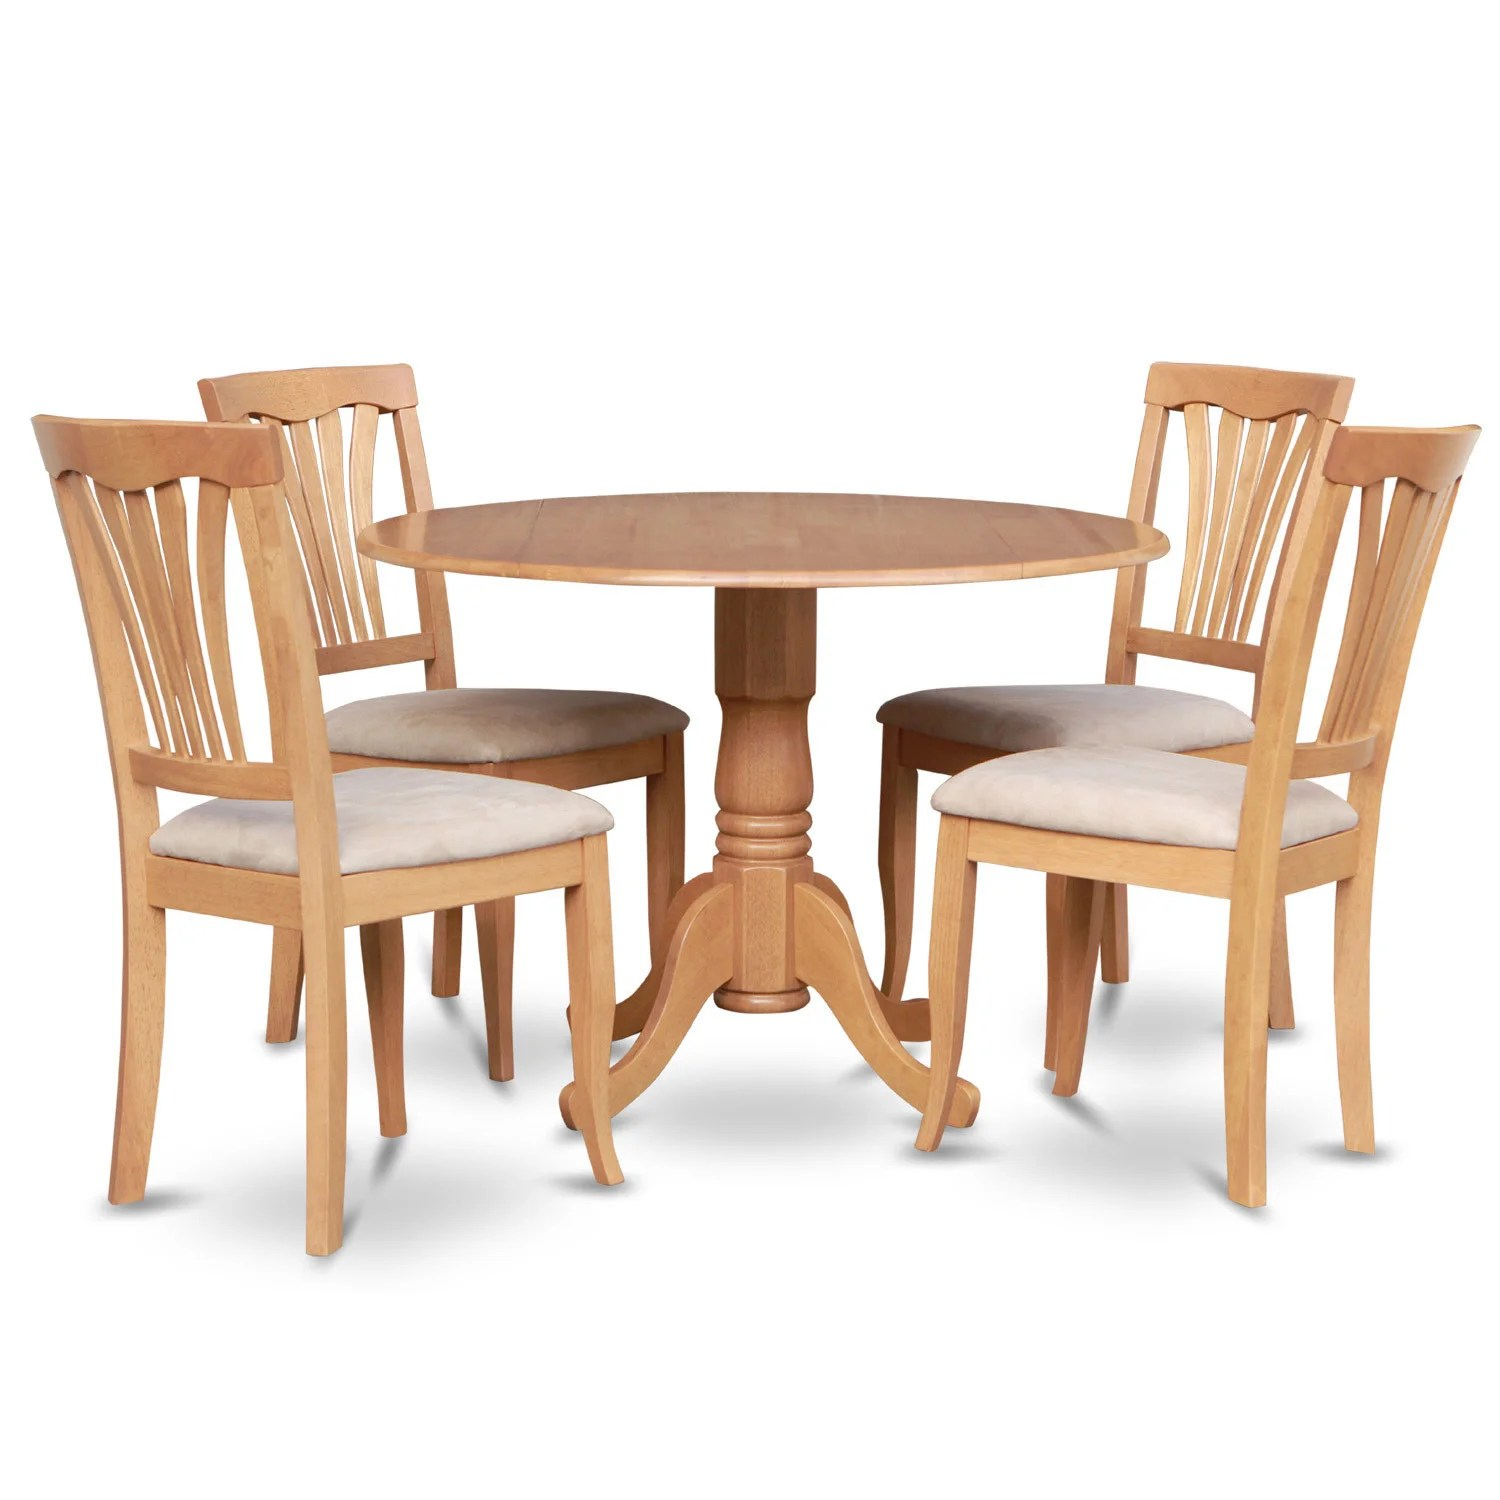 Round Kitchen Table And Chairs Set Oak Round Kitchen Table And 4 Kitchen Chairs 5 Piece